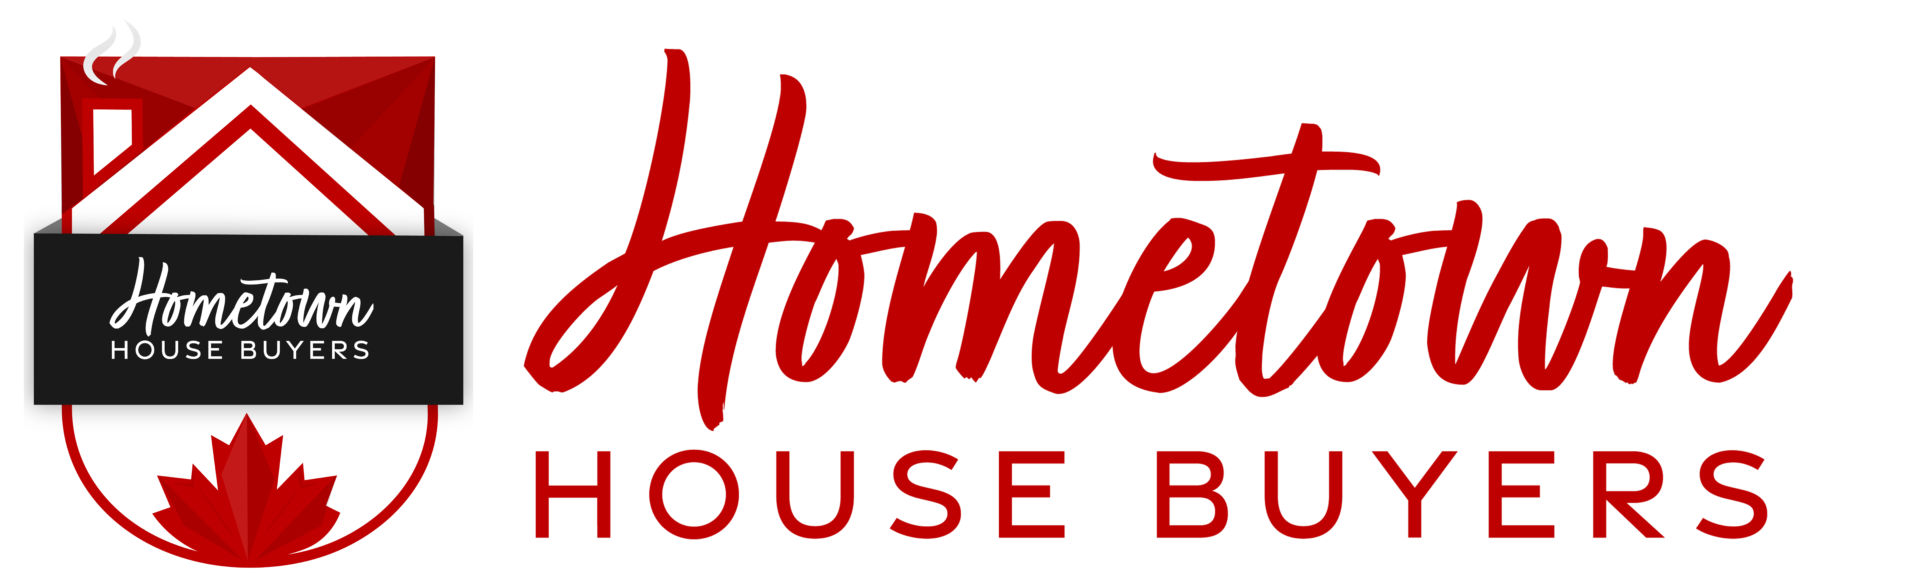 Hometown House Buyers logo